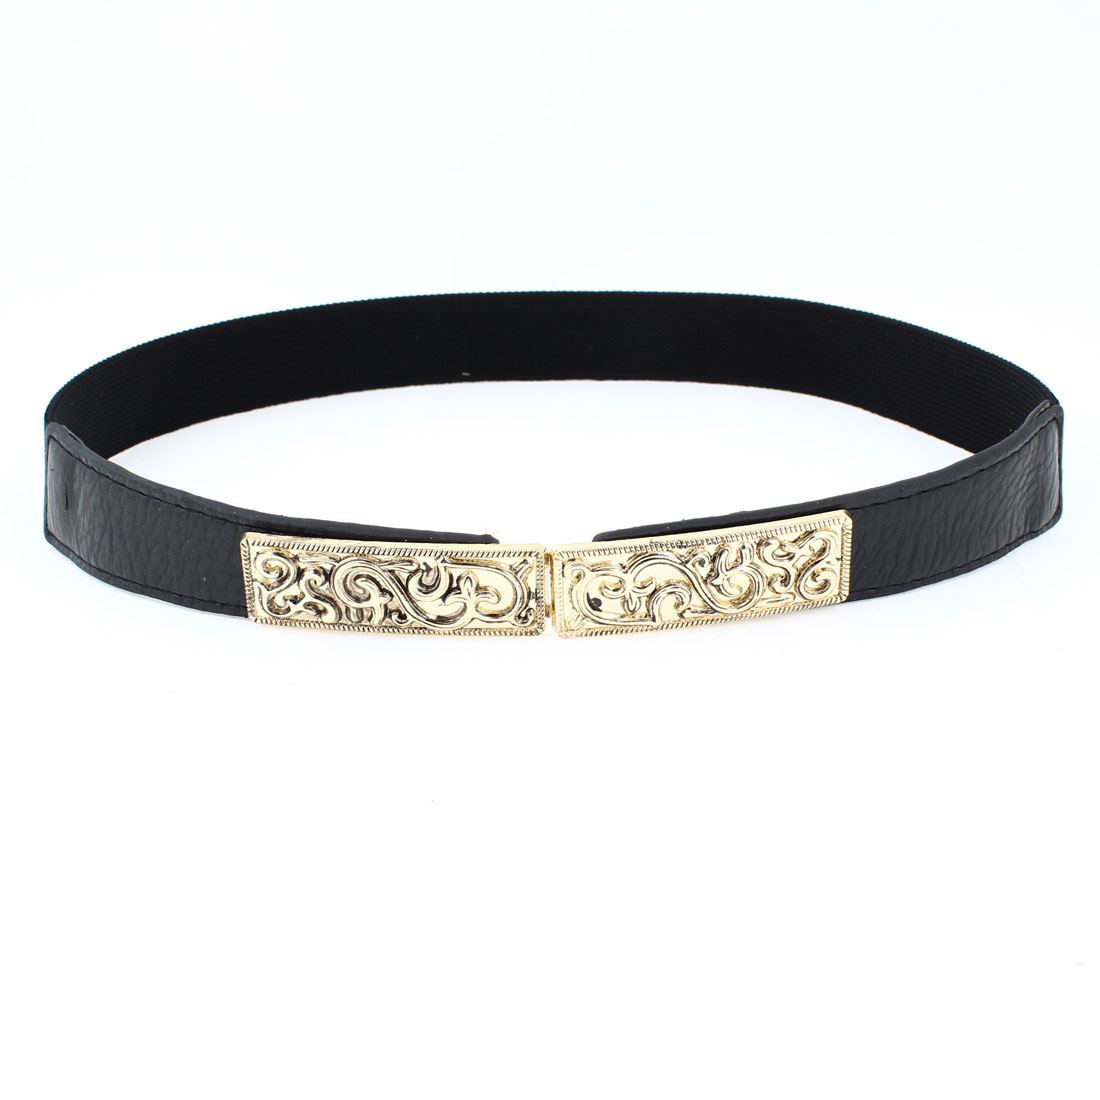 Women Florals Interlocking Buckle Faux Leather Skinny Cinch Belt Black Gold Tone